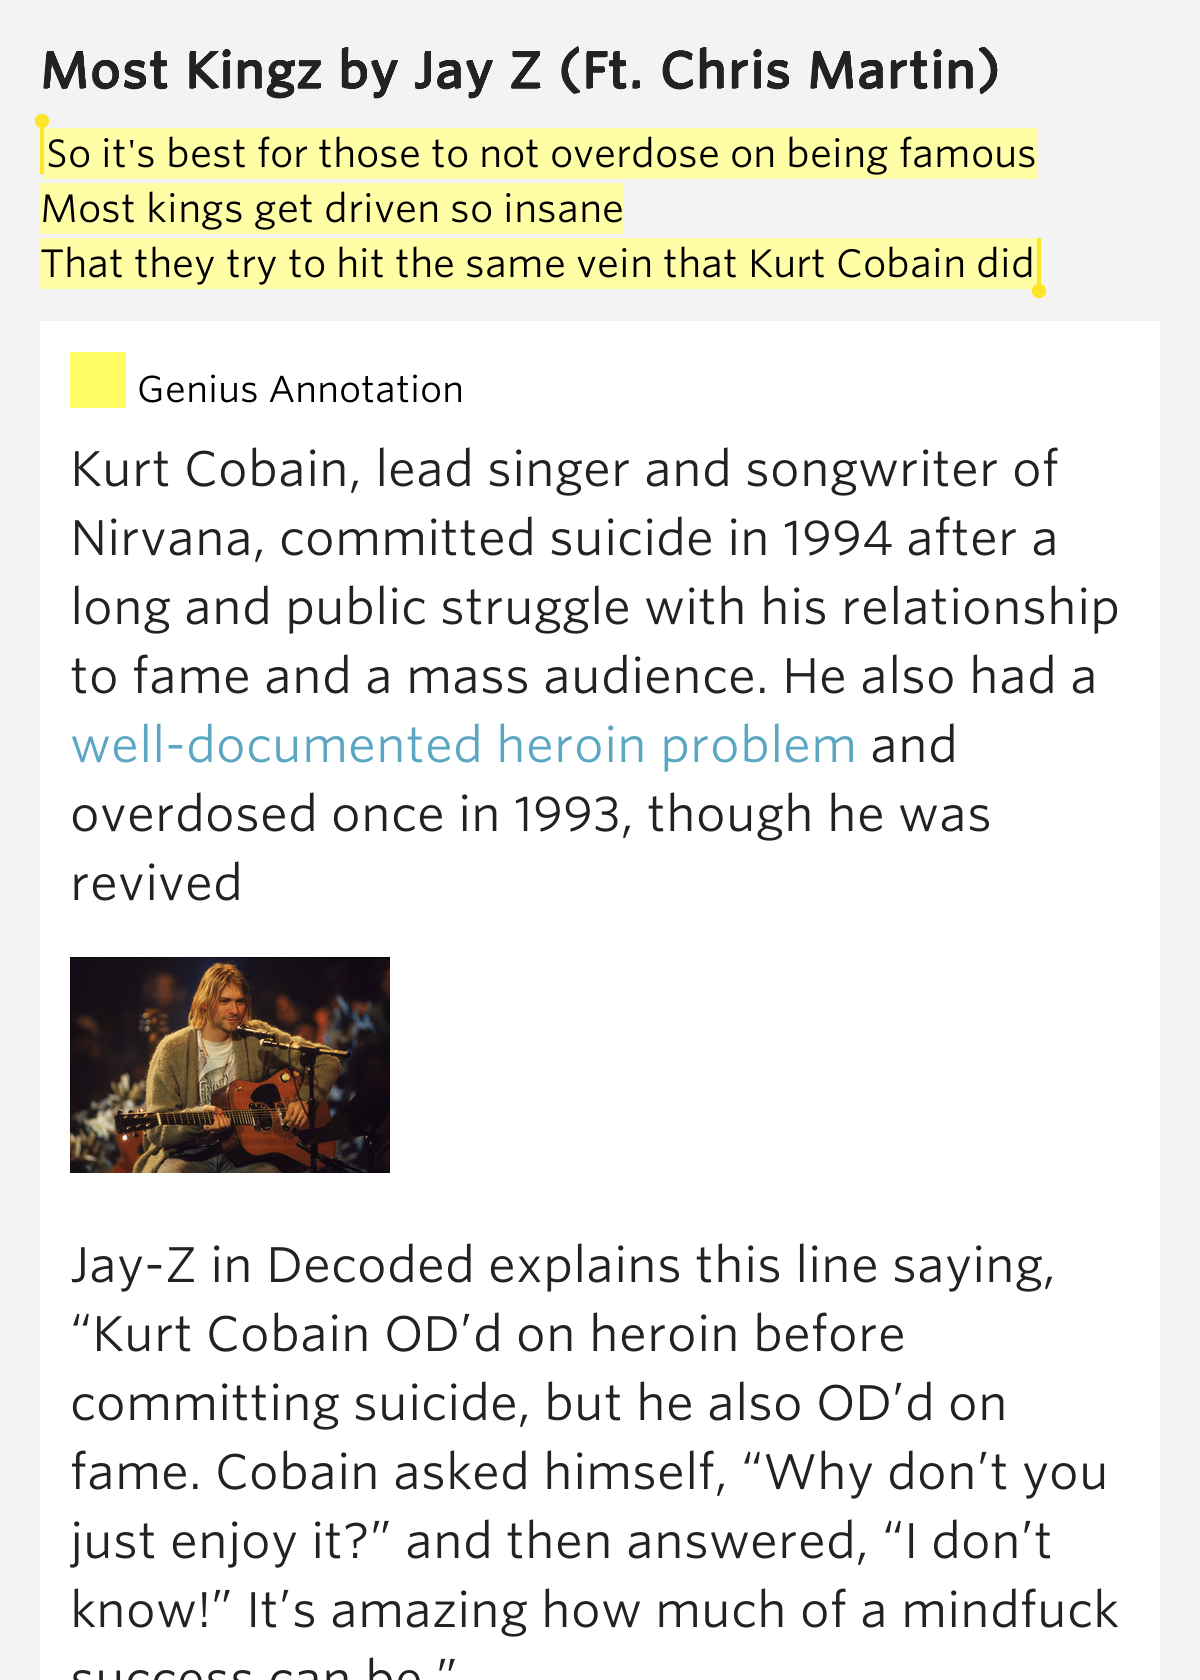 the reasons why popular lead singer and songwriter kurt cobain committed suicide Lead singer of nirvana, committed suicide 20 years ago kurt cobain, lead singer of the late musician's lasting influence on popular.